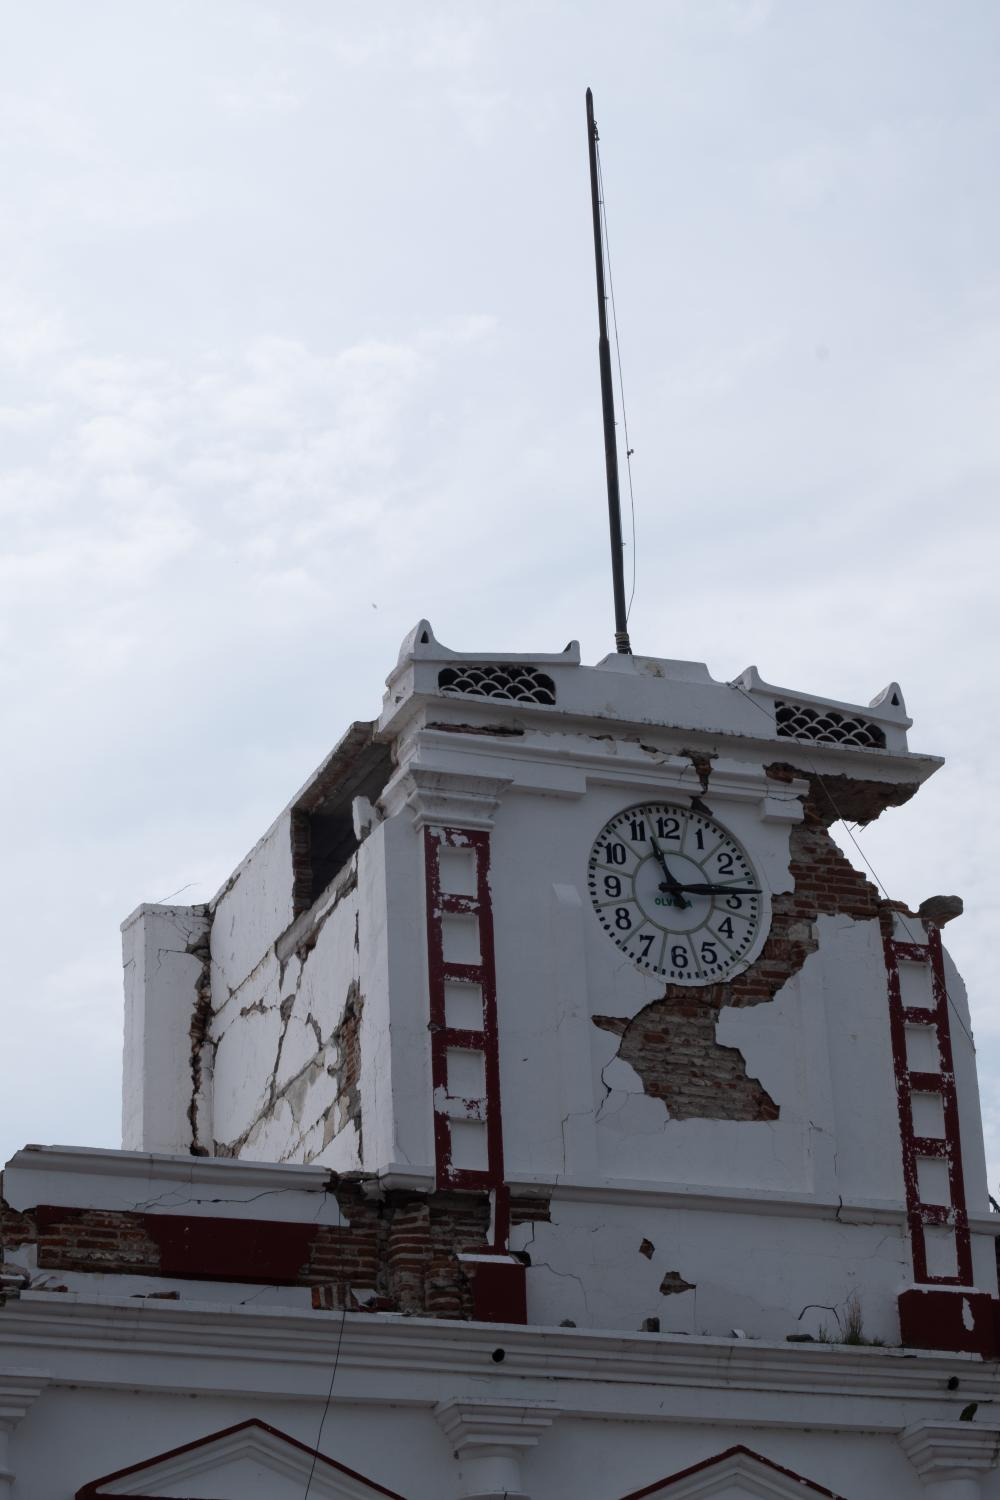 The town hall clock was still unrepaired and with clear signs of deterioration after the earthquake. At the time, many were still scared of incoming earthquakes and aftershocks that could further damage to the communities.